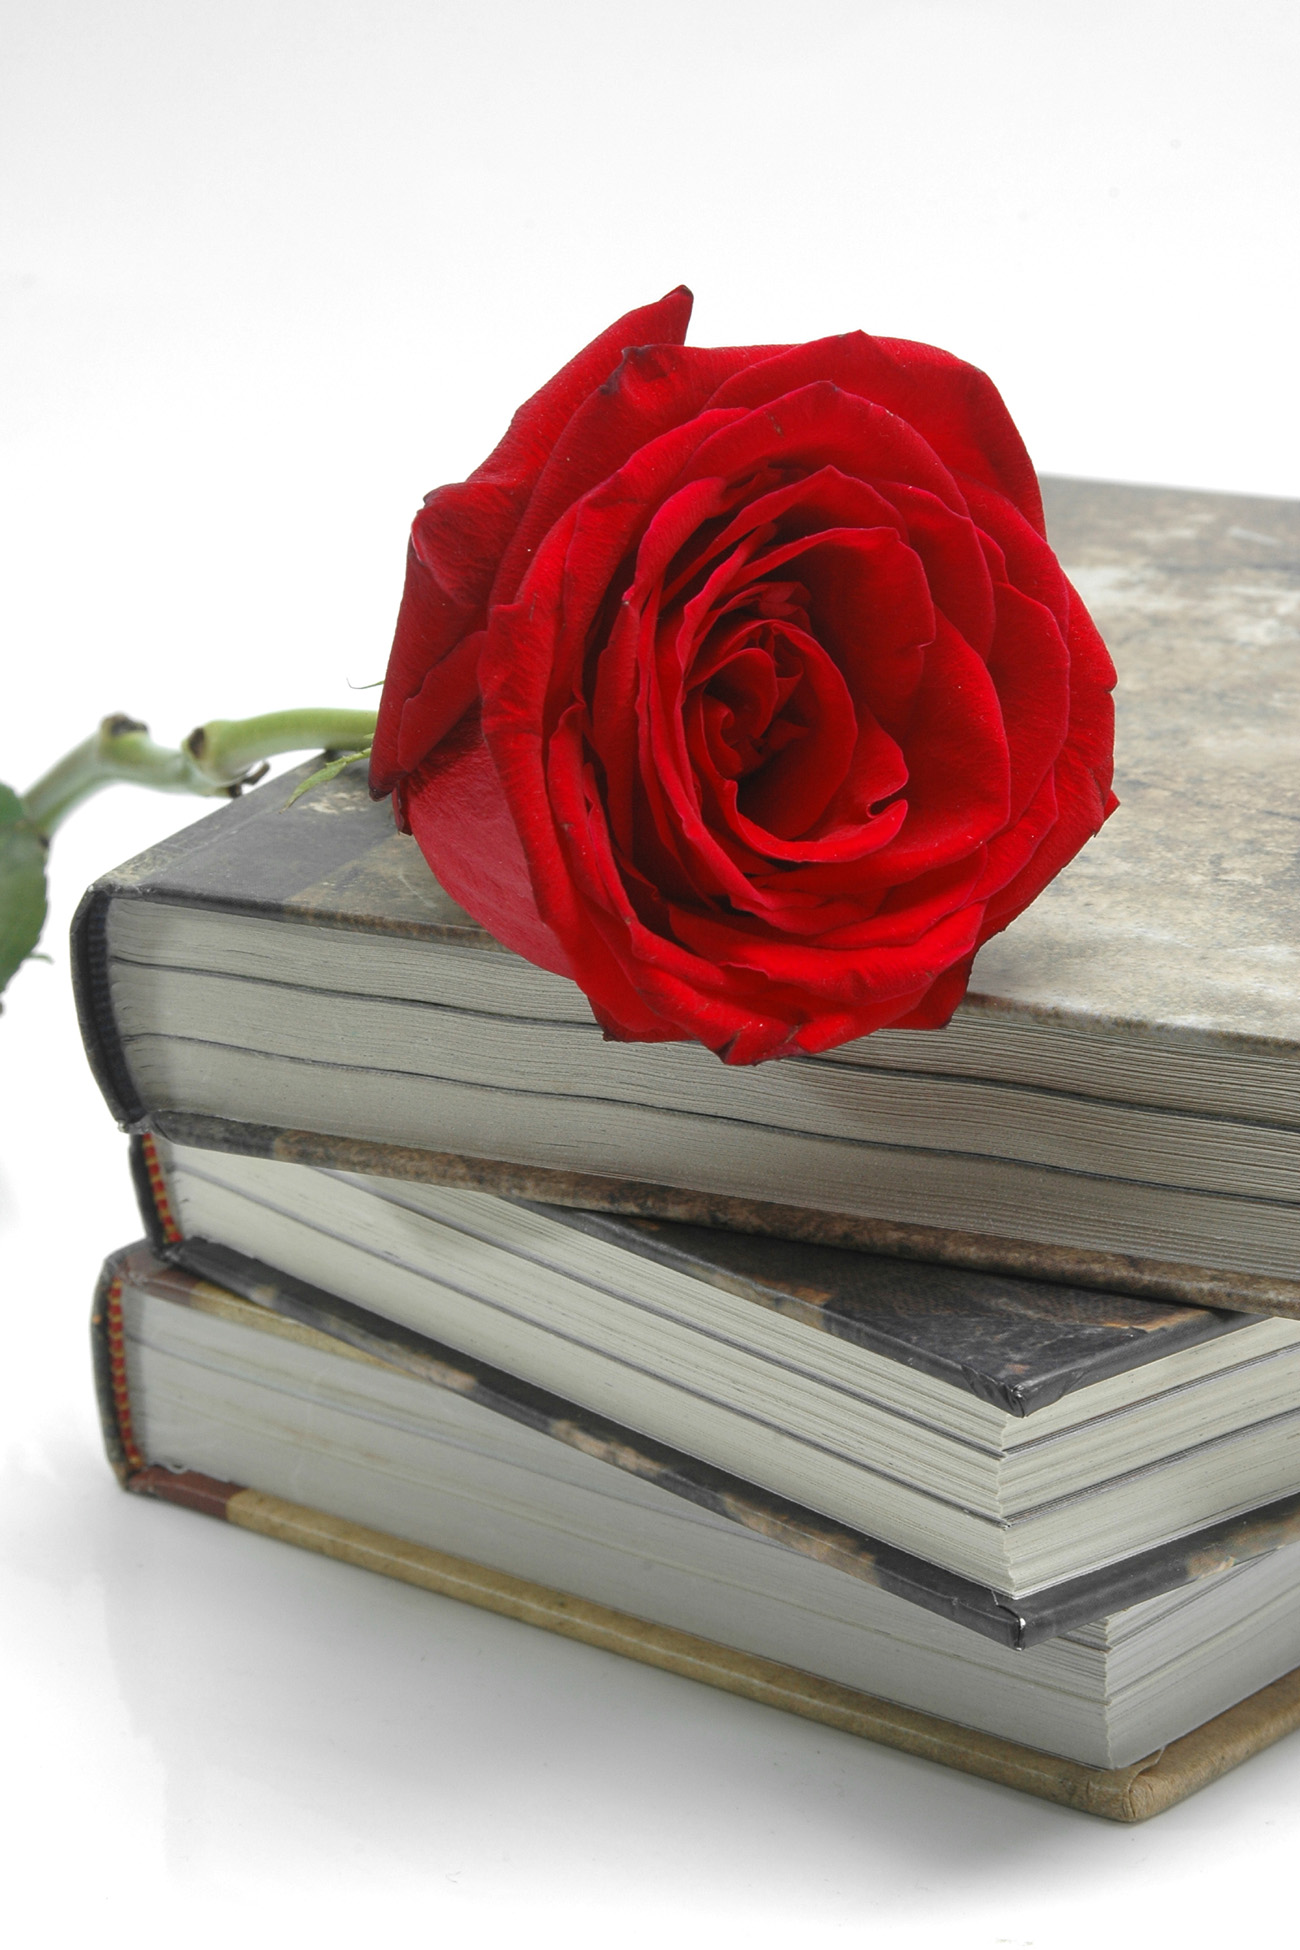 Old books and Roses 31636